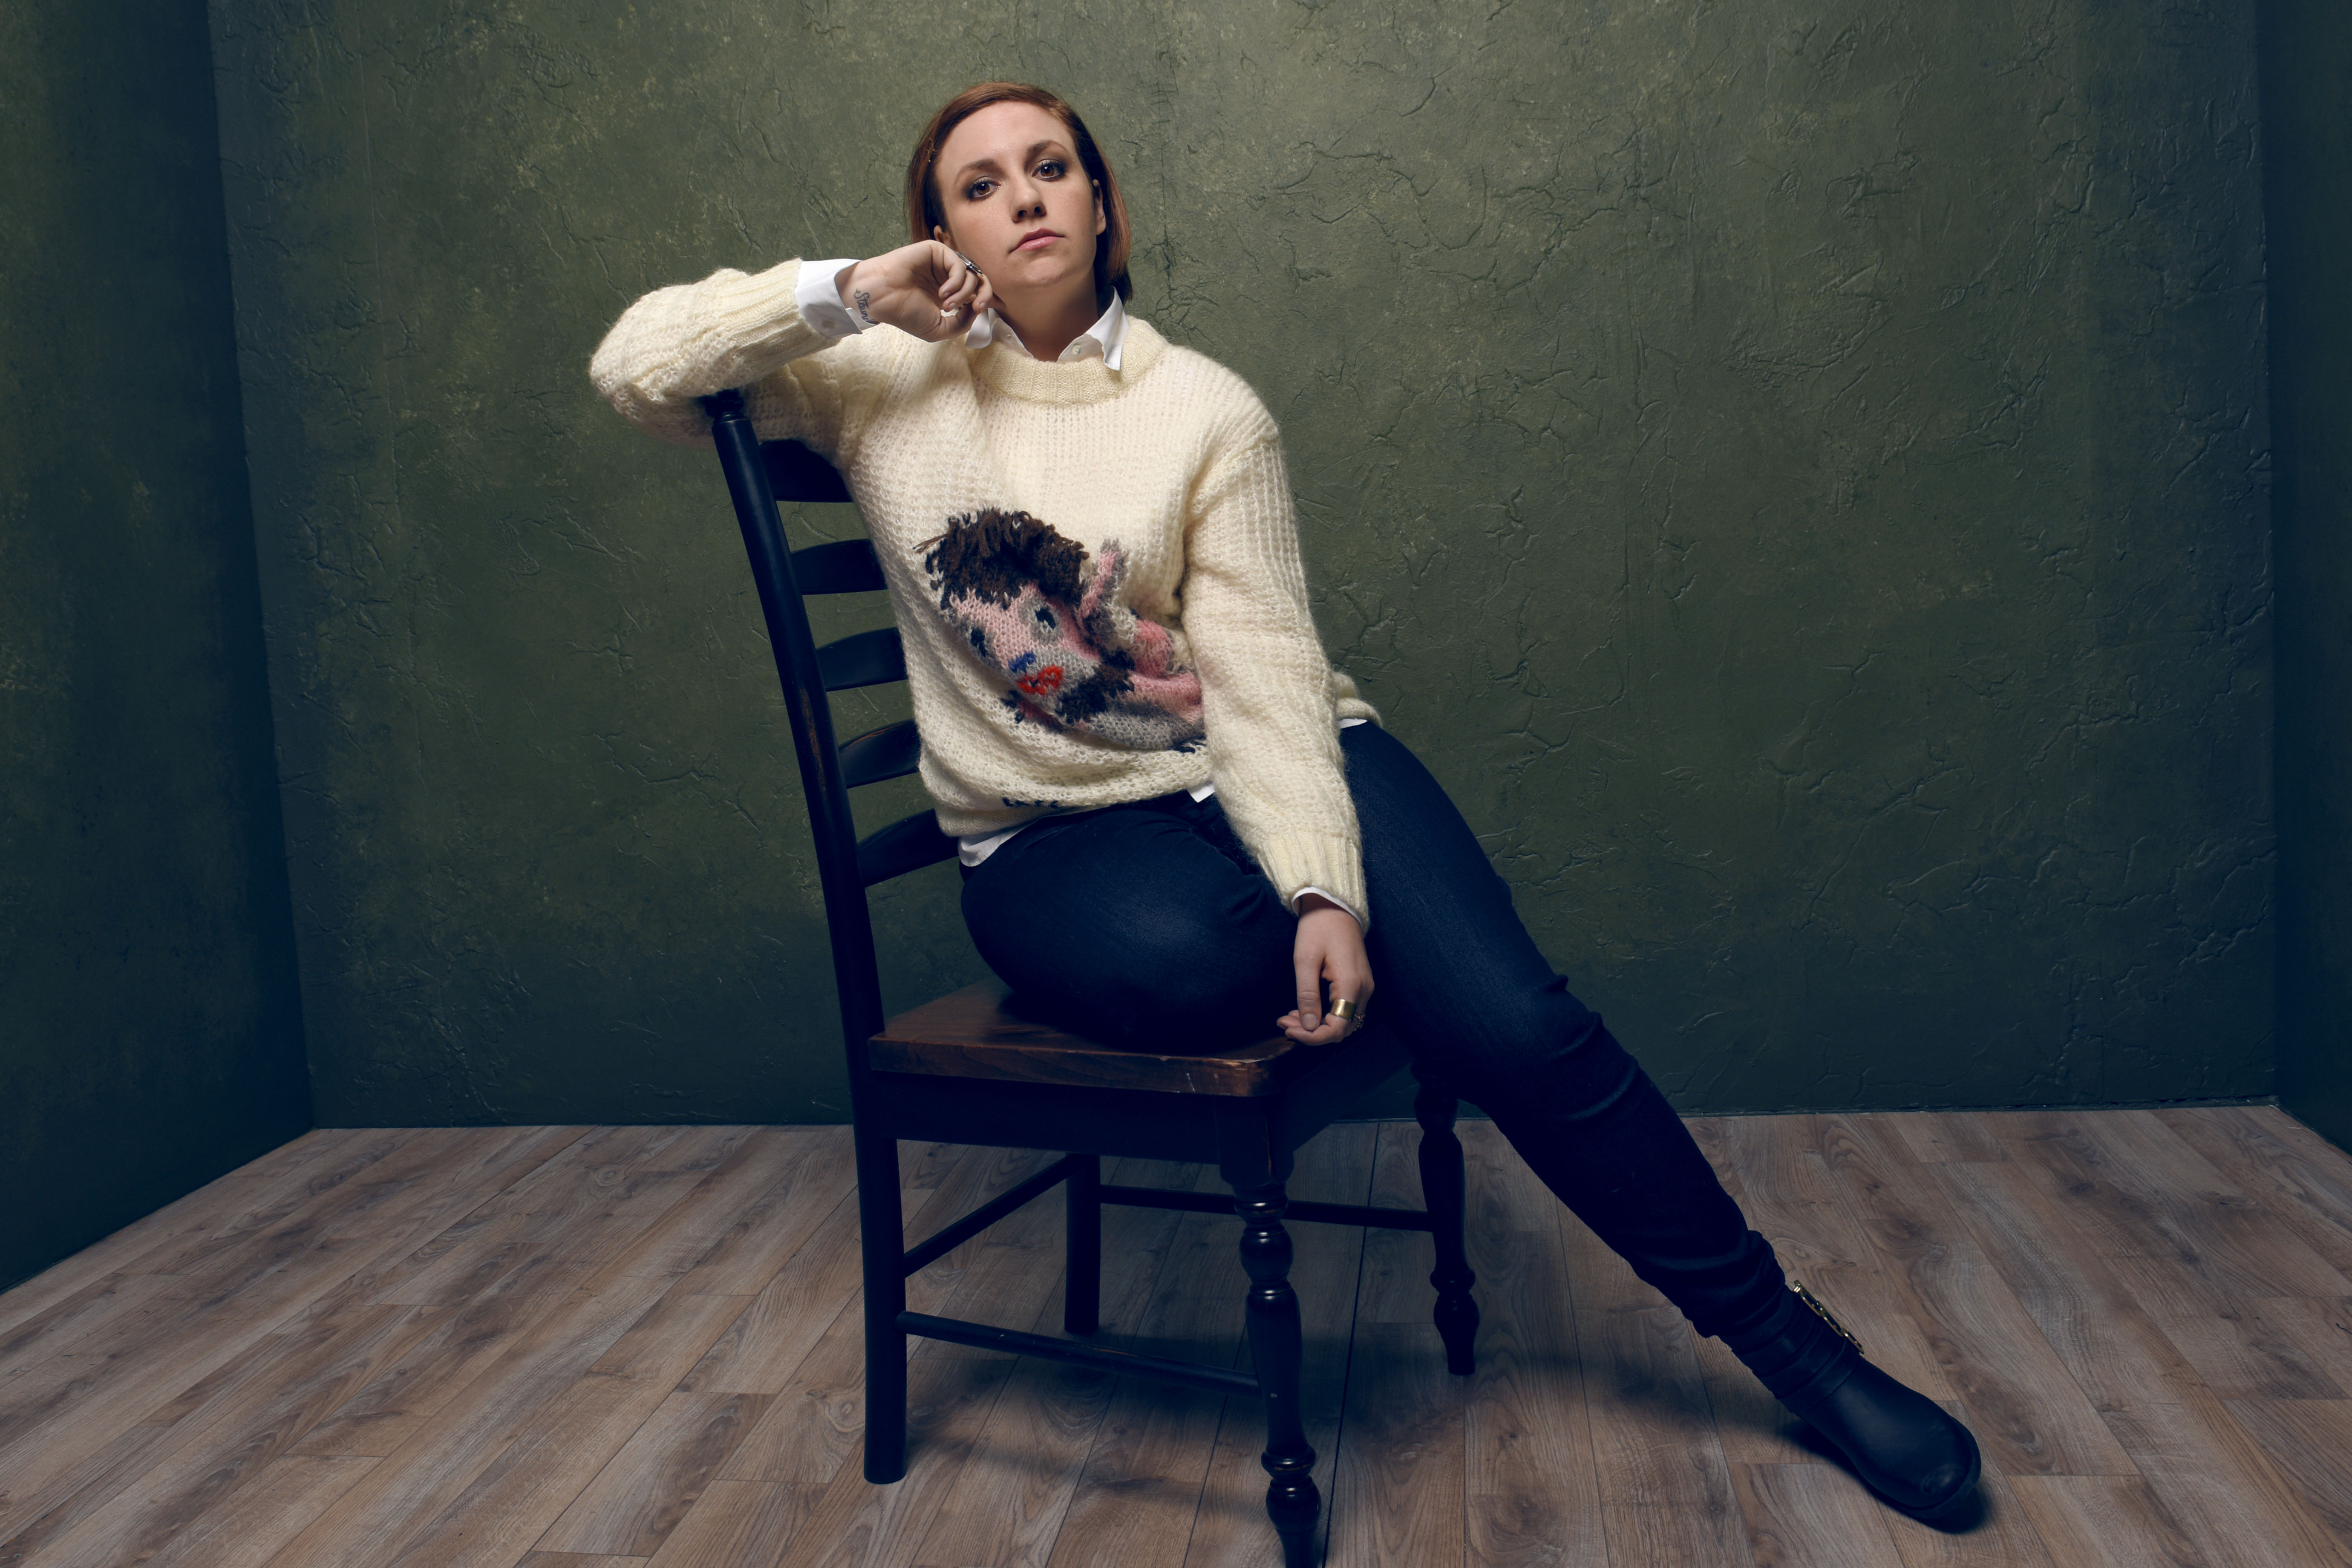 Lena Dunham during the 2015 Sundance Film Festival.  The actress recently penned an essay on her thoughts on the 2016 U.S. presidential election.